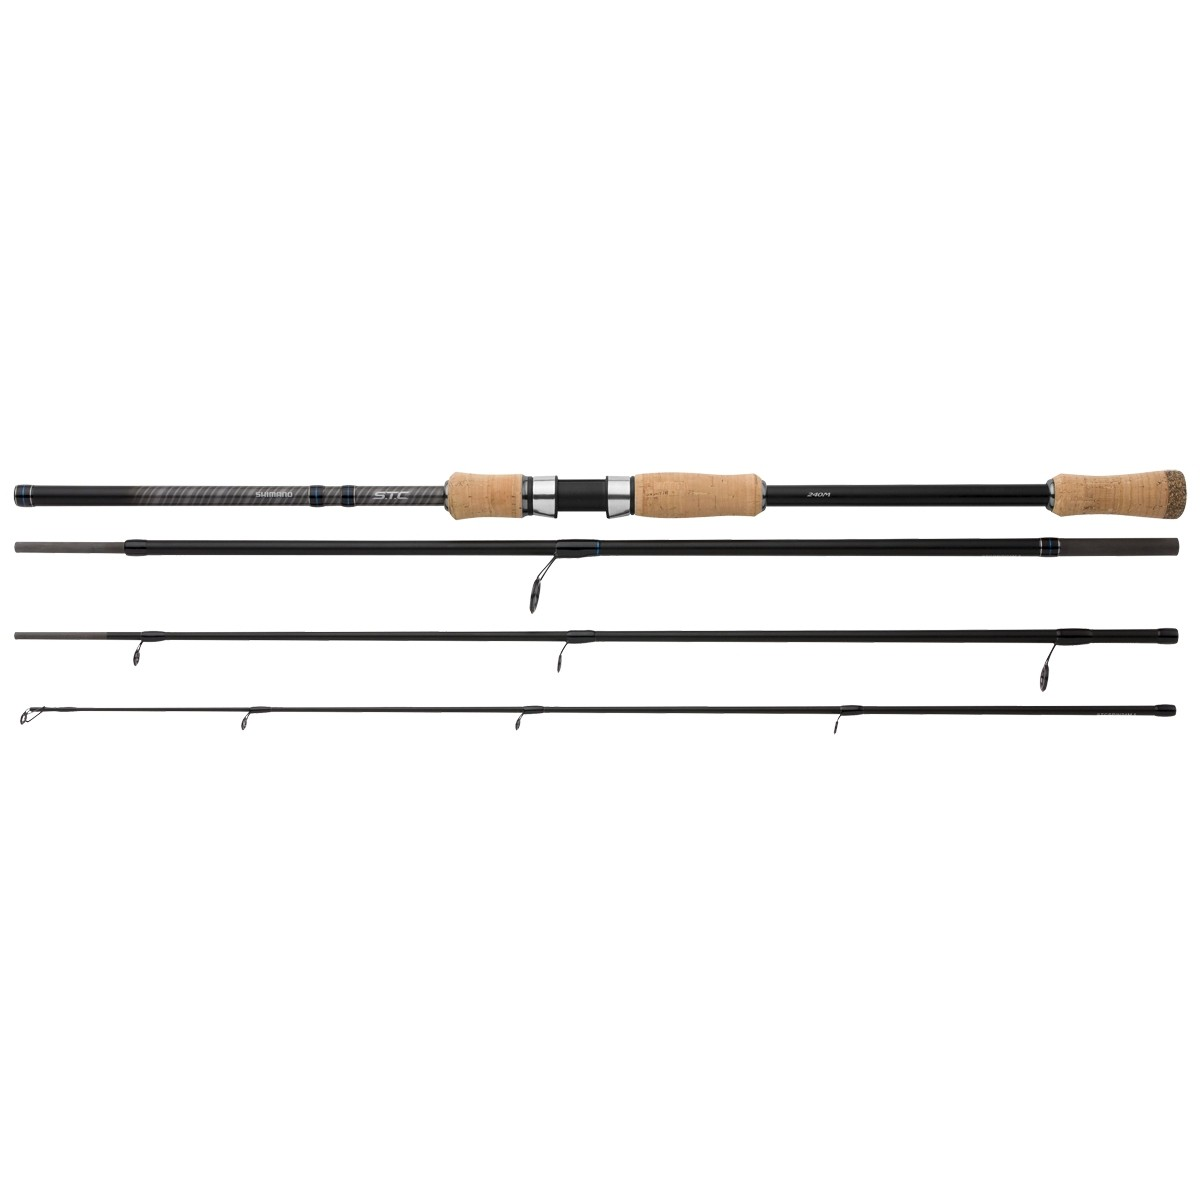 Shimano STC Multi spin travel spinning rod